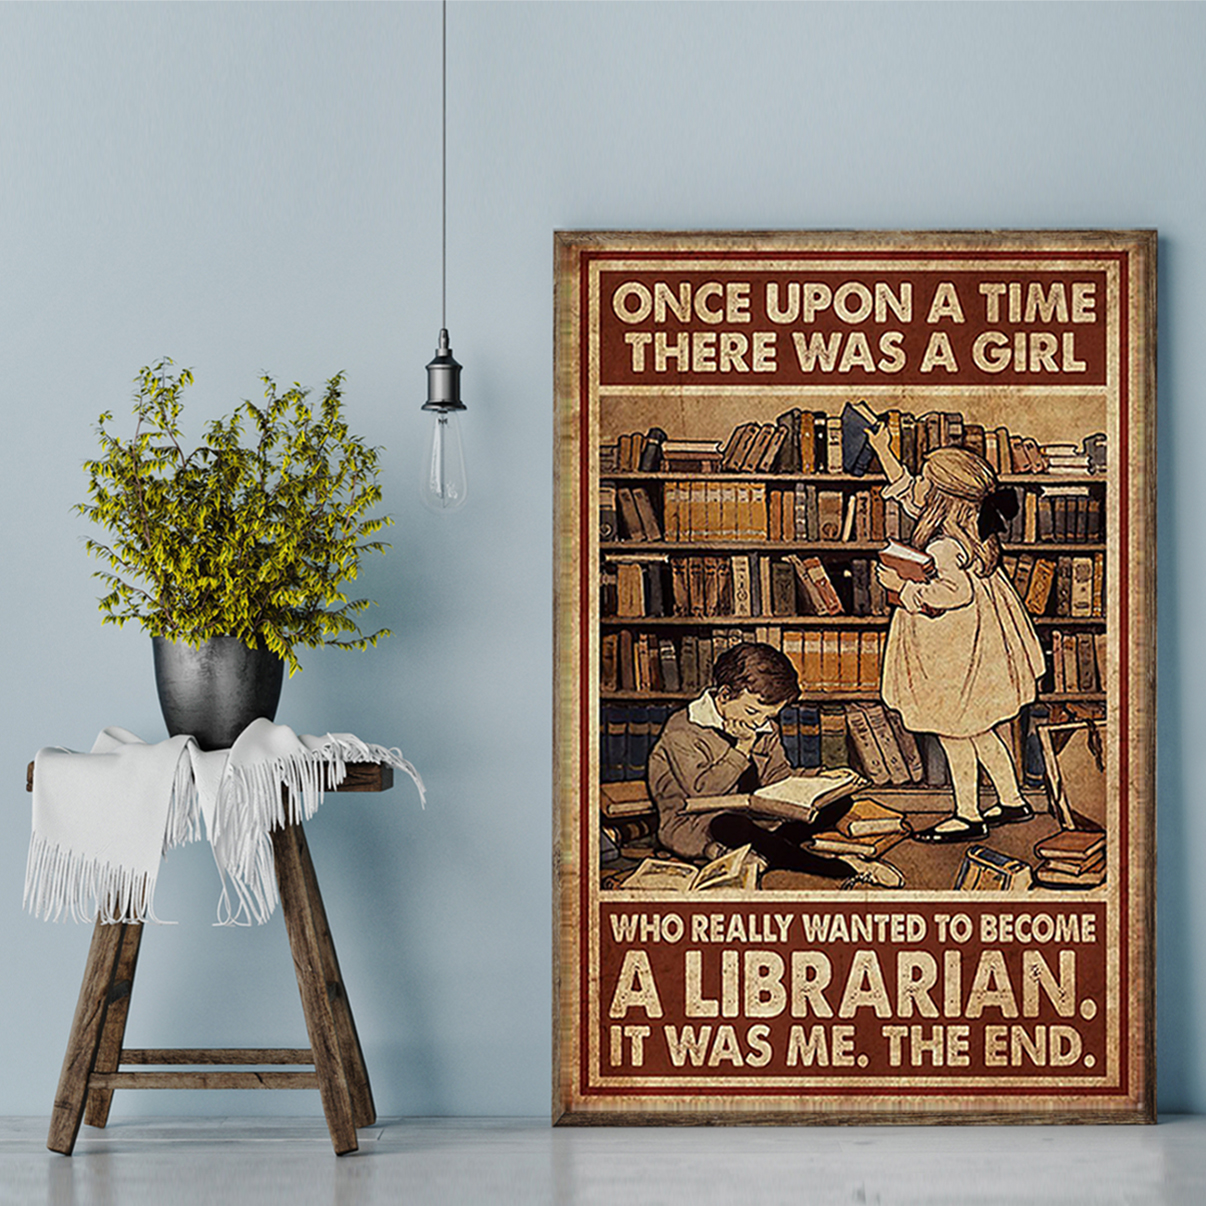 Once upon a time there was a girl who really wanted to become a librarian poster A2